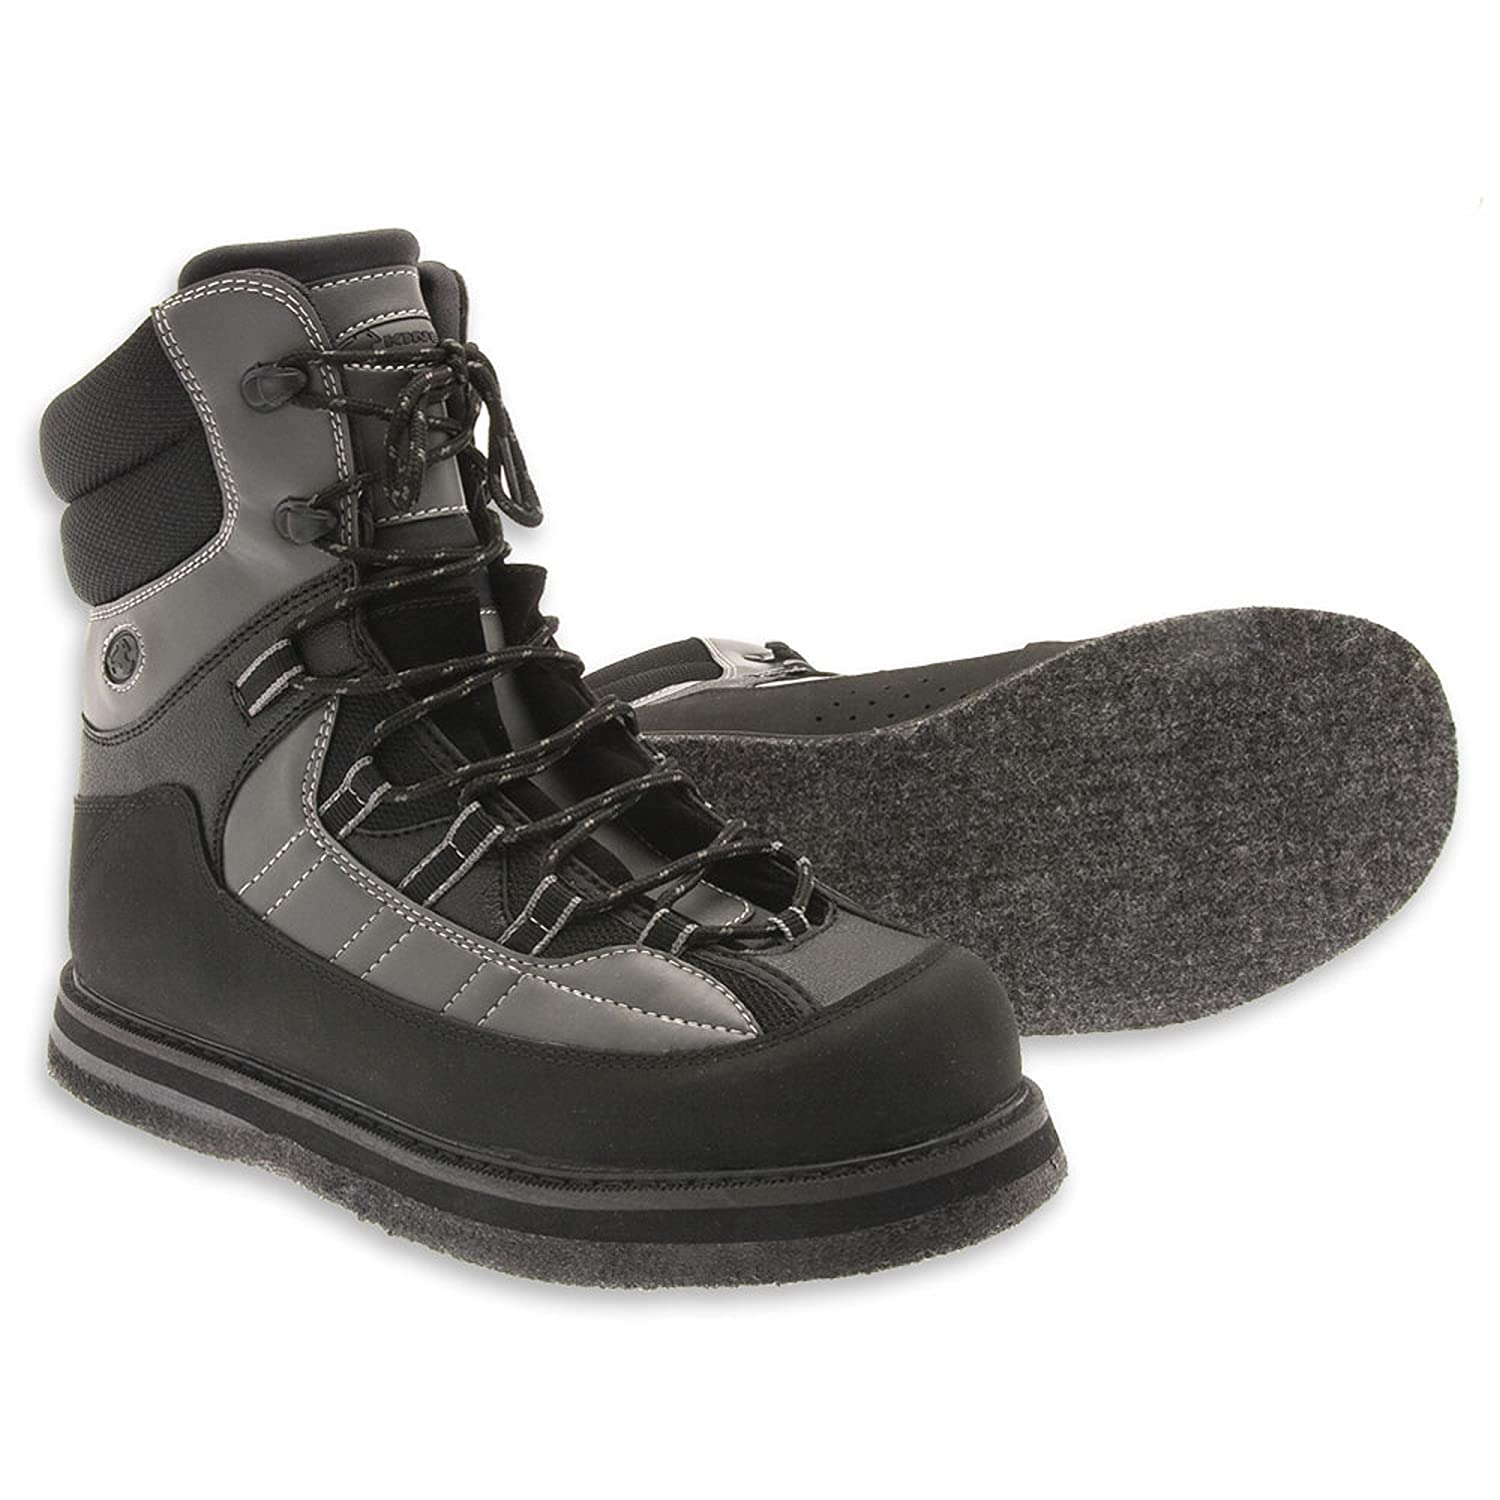 Kinetic Herren Herren Herren G2 High-Top, Schwarz Grau, 40 41 EU 1e6d87